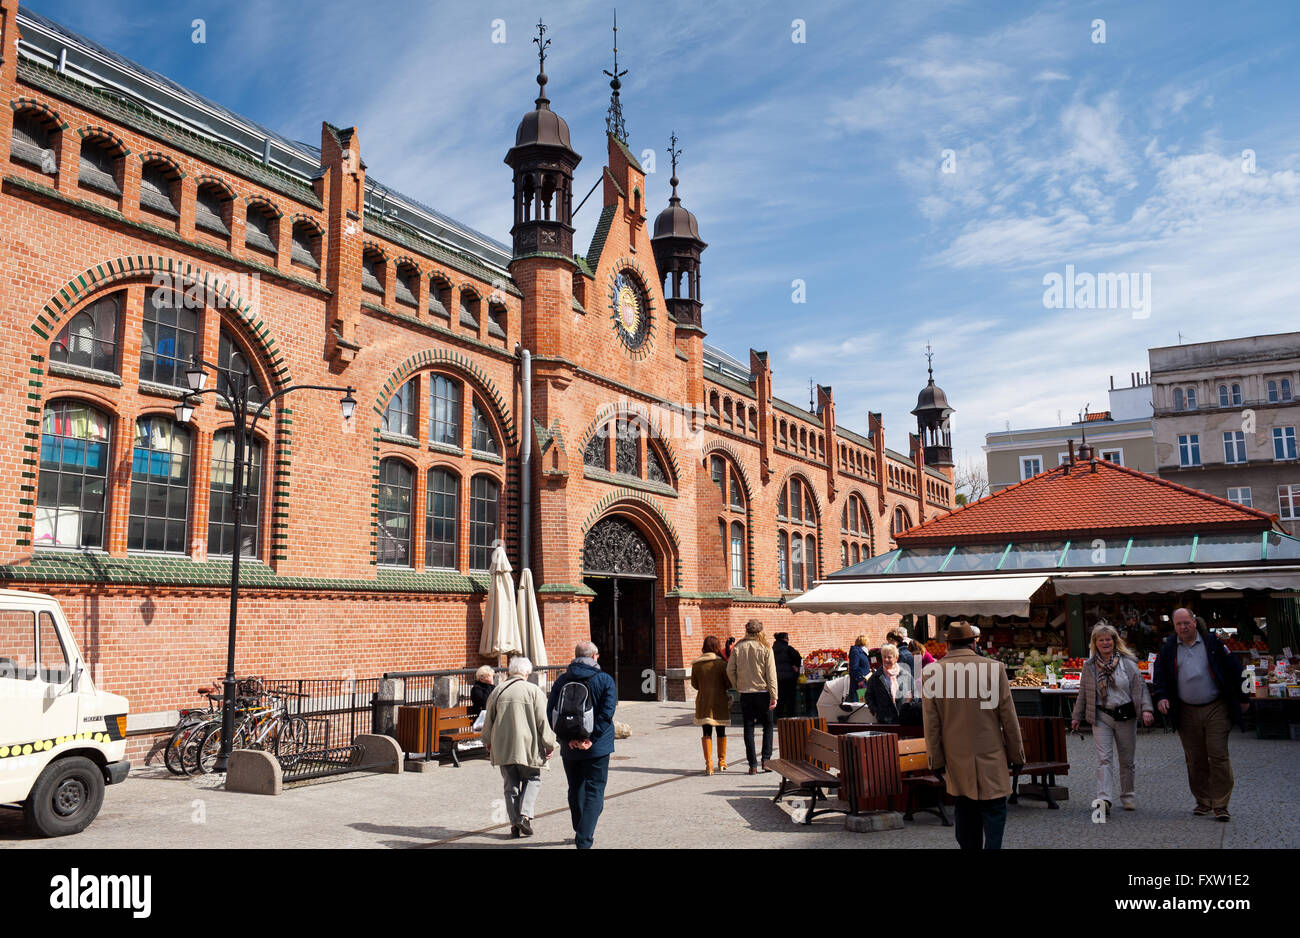 Hala Targowa in Gdansk, the Covered Market building exterior from 1896 in Danzig, tourist sightseeing architecture Stock Photo